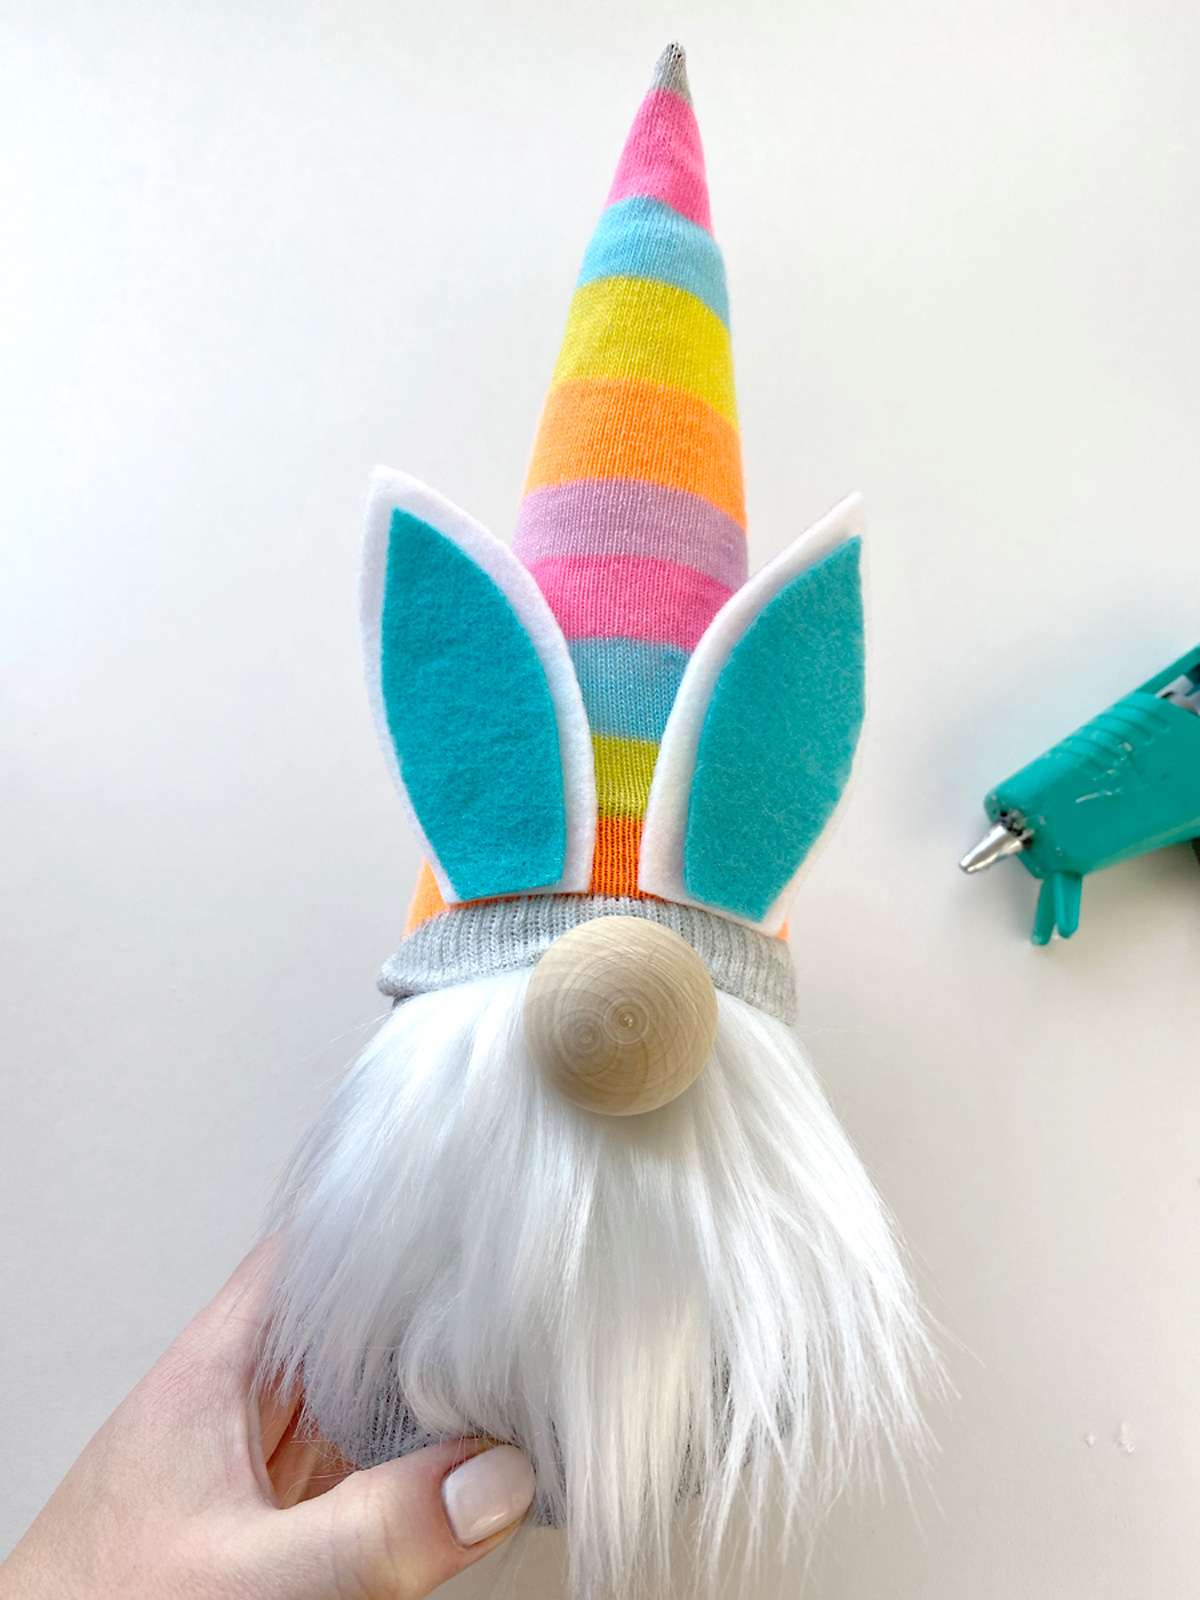 Glue on ears for Easter gnome